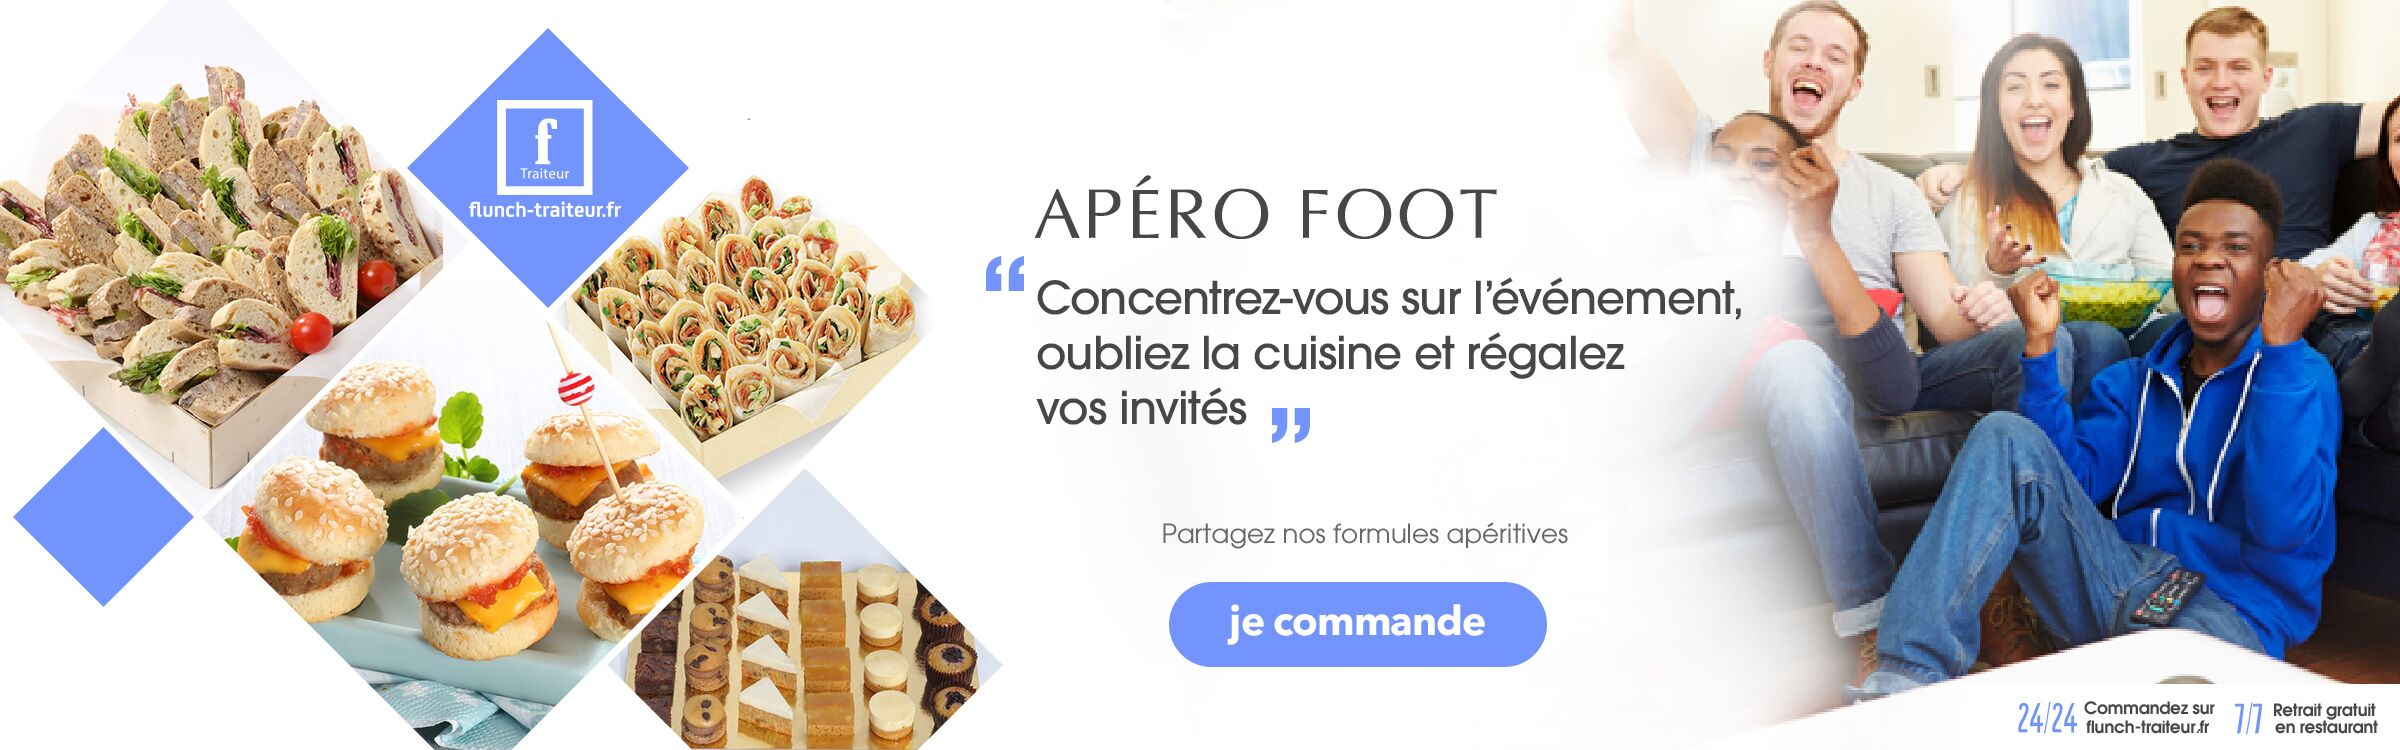 foot flunch traiteur